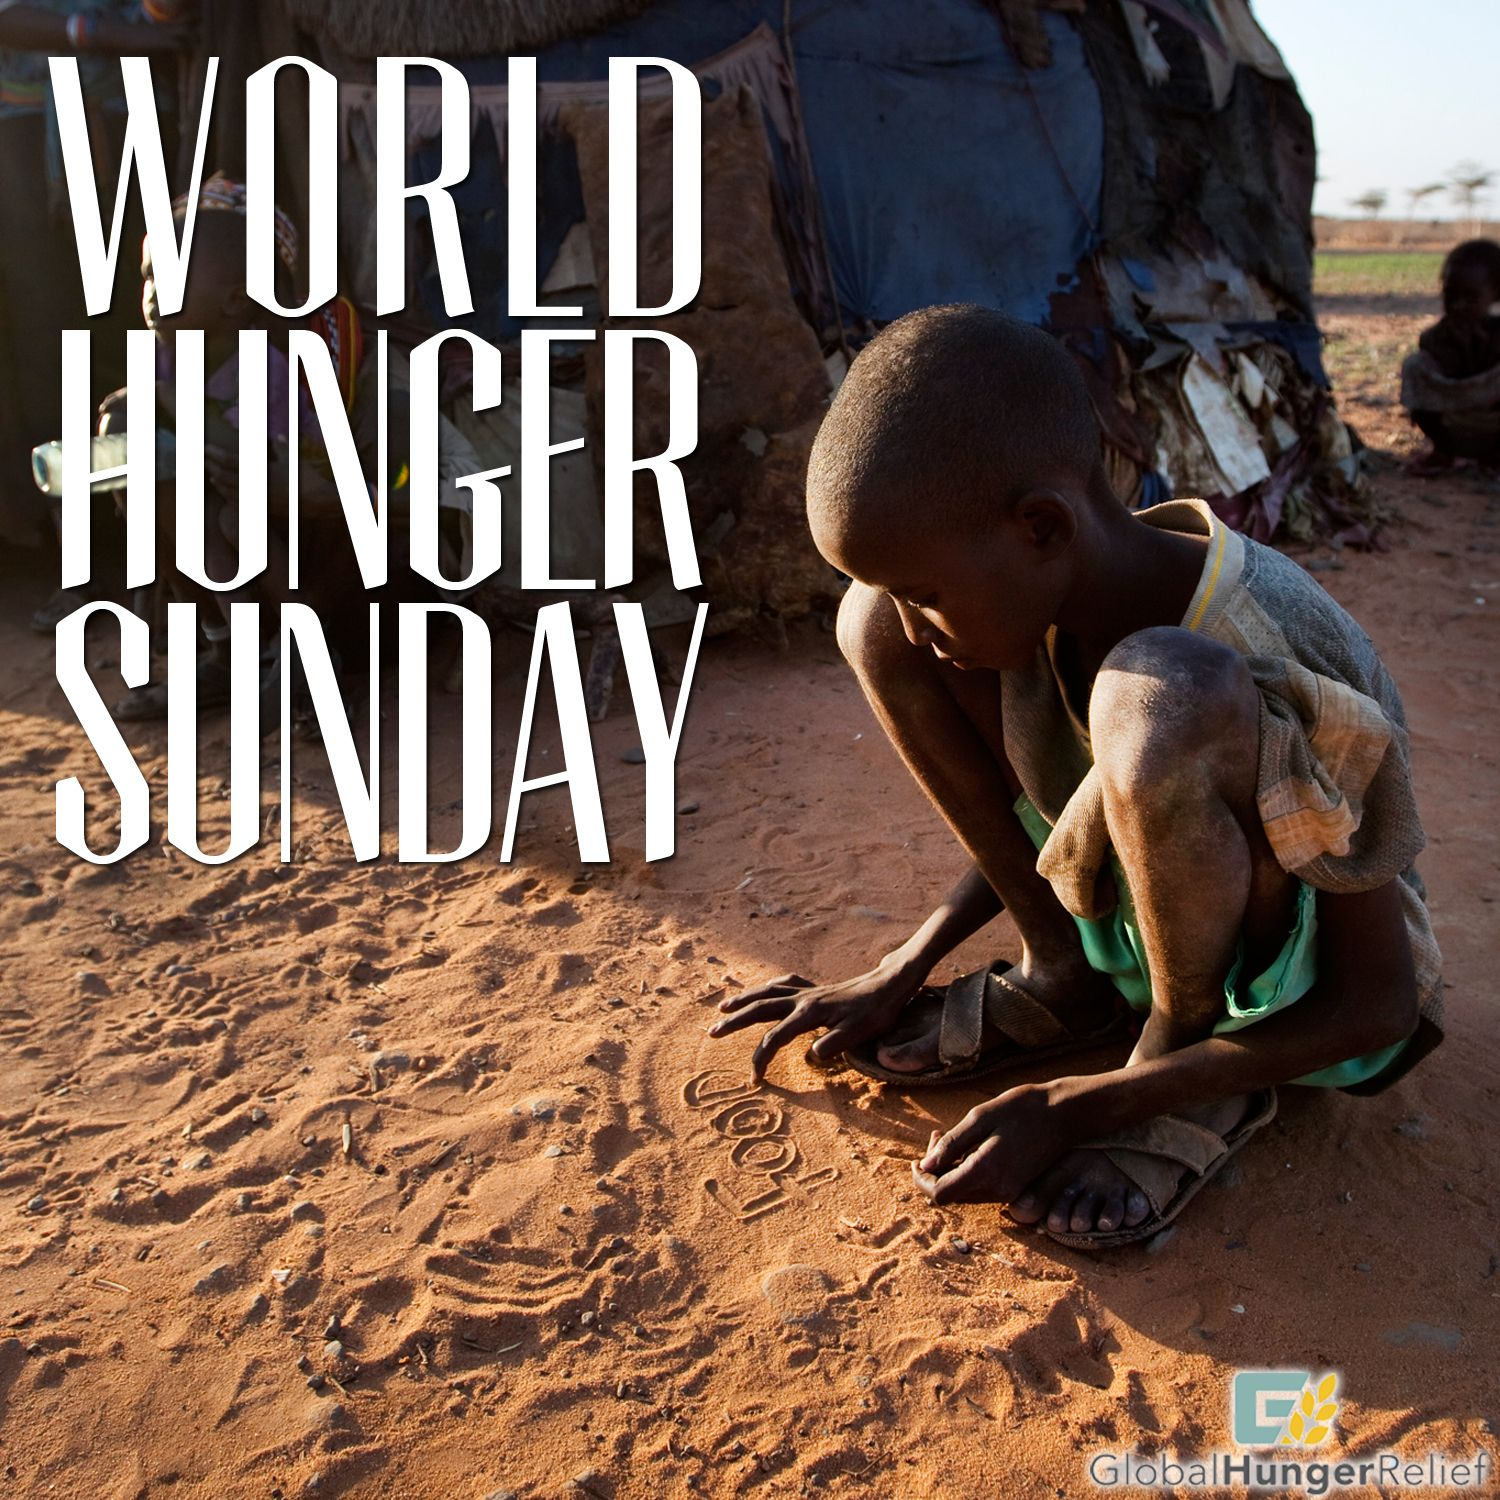 World Hunger Fund